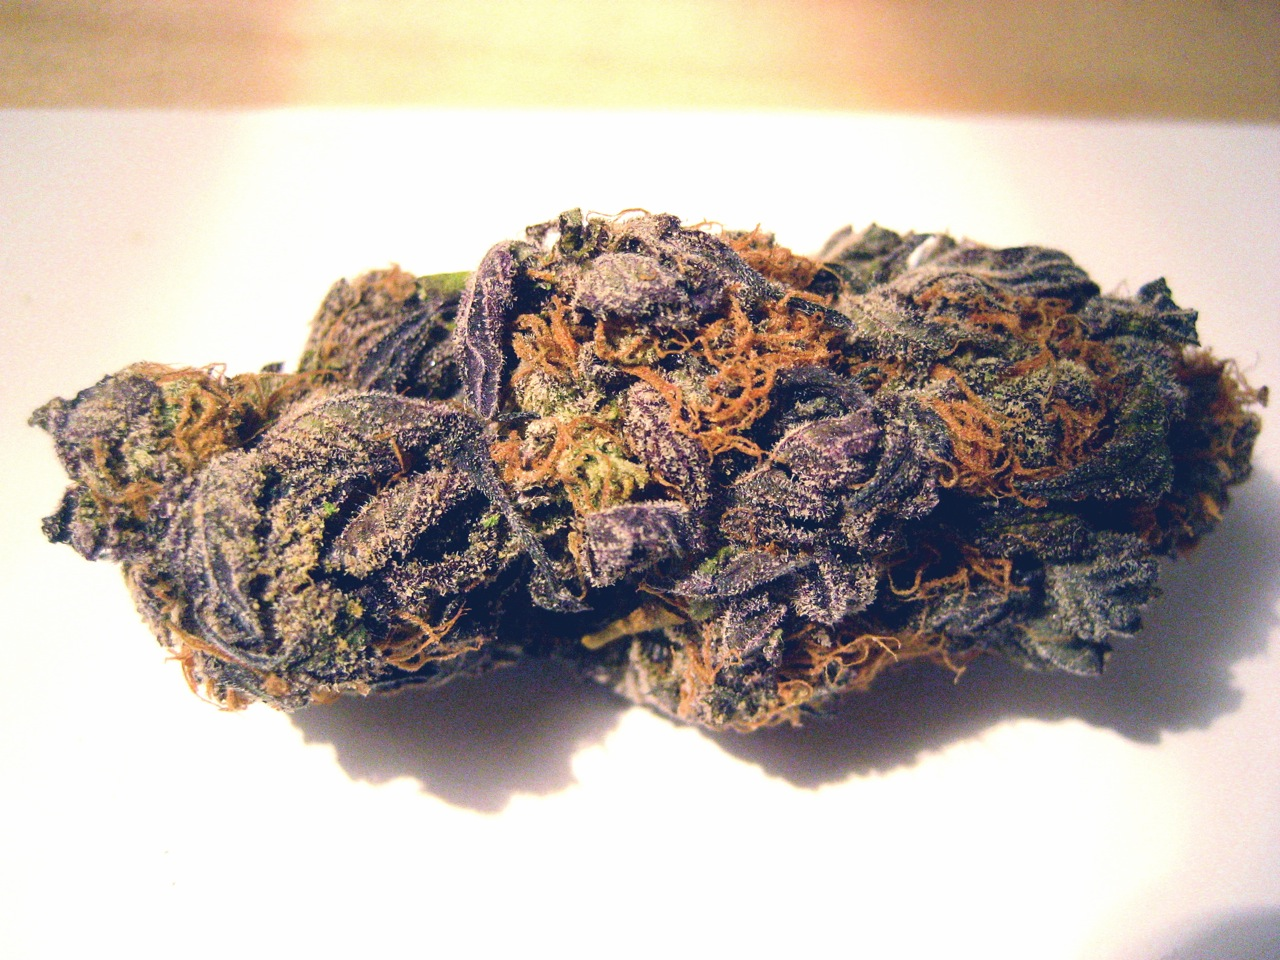 Purple marijuana nugs agree with